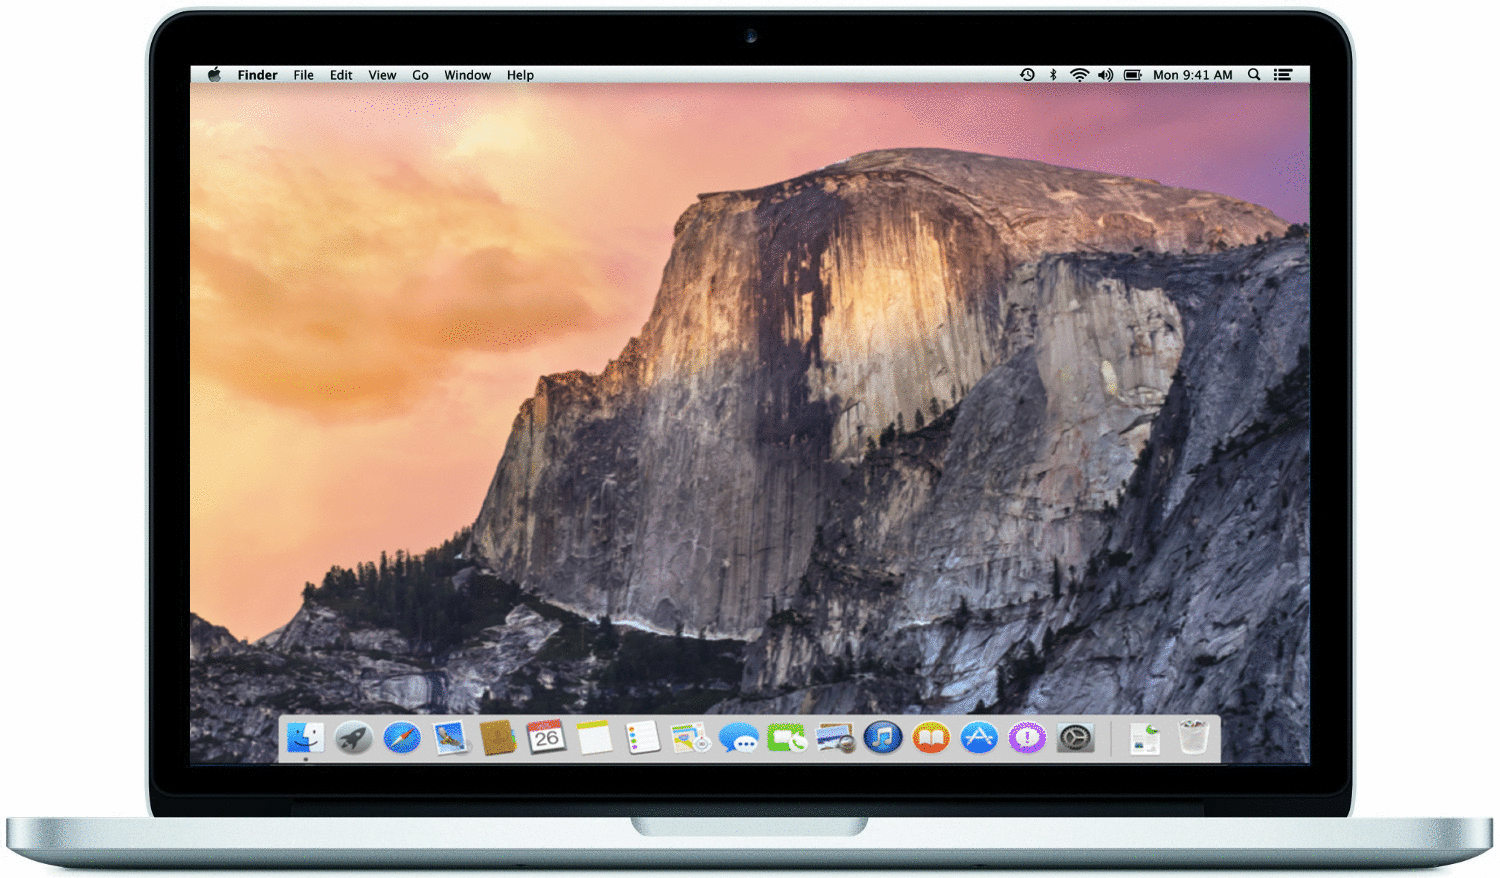 Apple MacBook Pro CTO 13.3 (Retina Display) 2.9 GHz Intel Core i5 16 GB RAM 512 GB PCIe SSD [Early 2015]